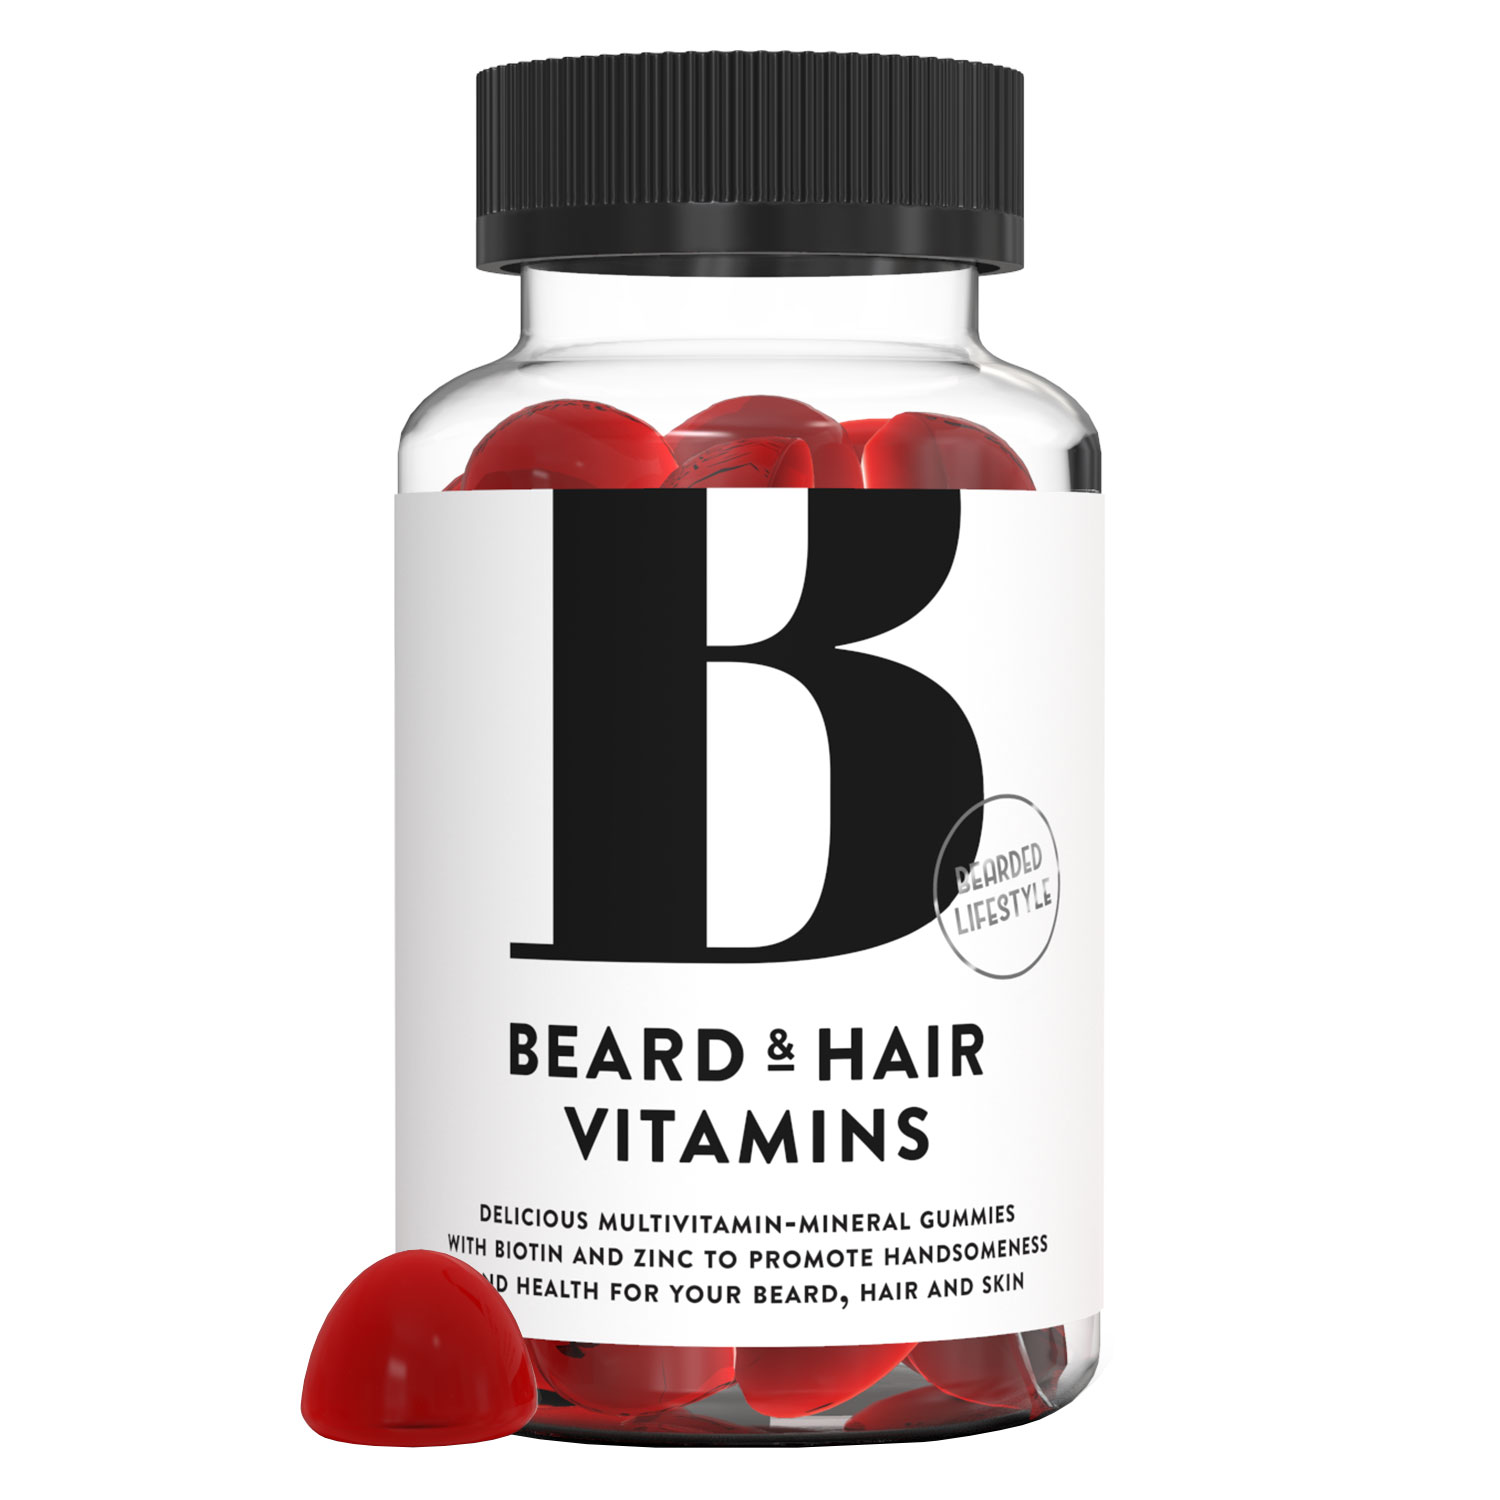 Bearded Lifestyle - Beard & Hair Vitamins Gummies